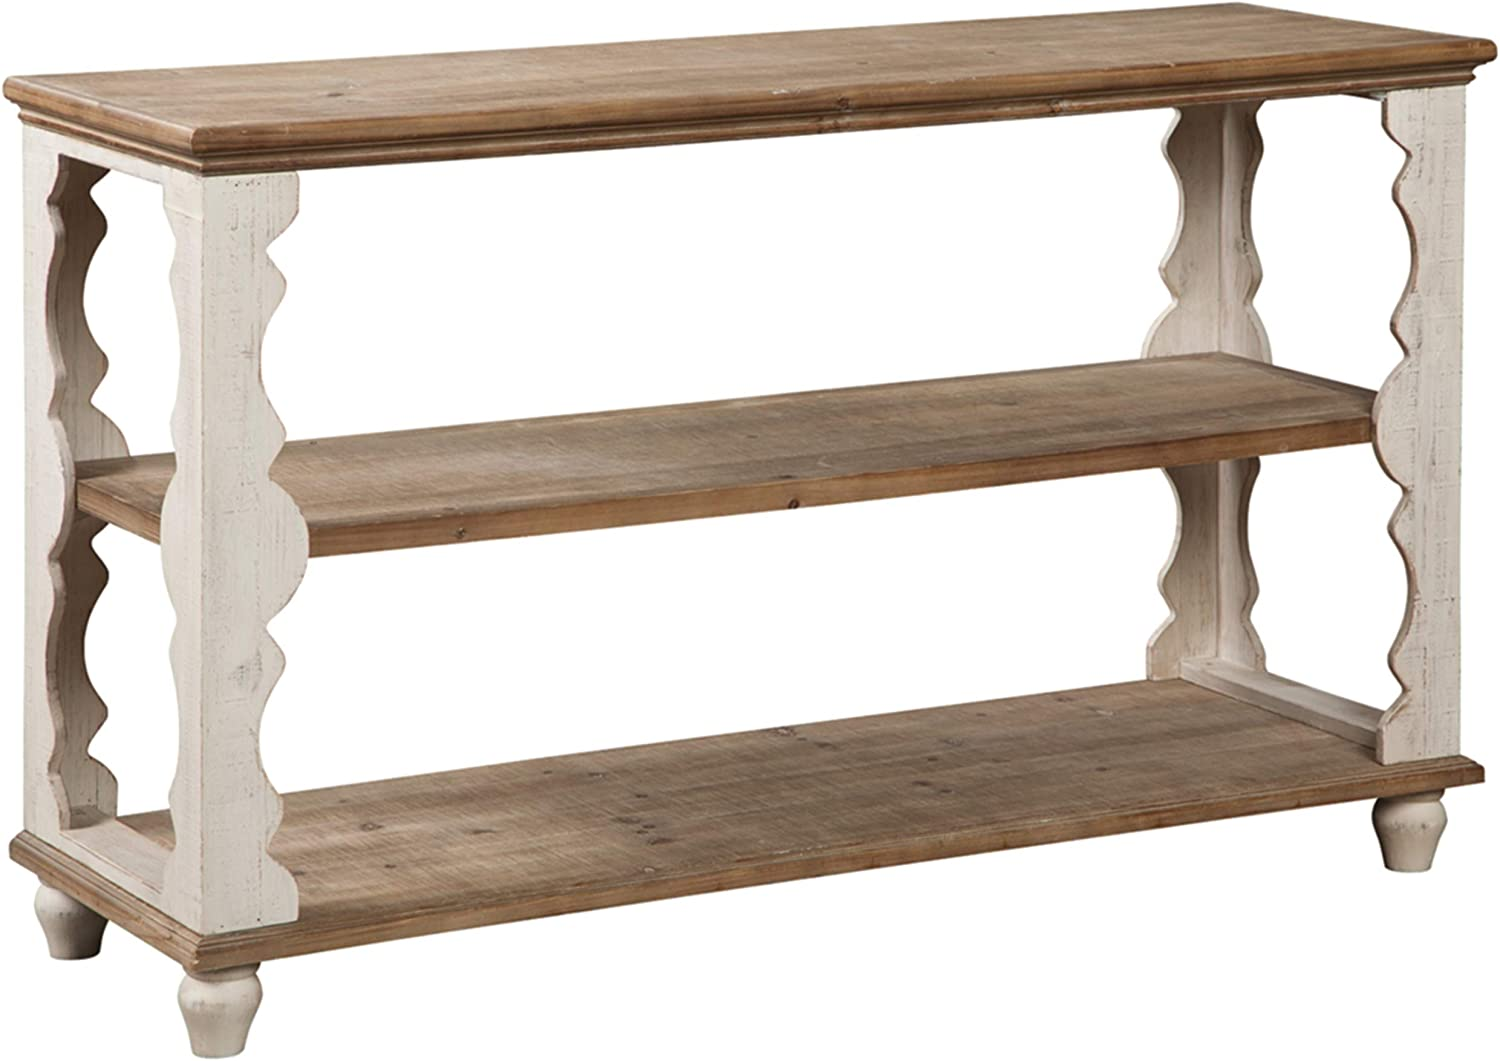 Signature Design By Ashley Alwyndale Console Sofa Table Casual Antique White Brown Furniture Decor